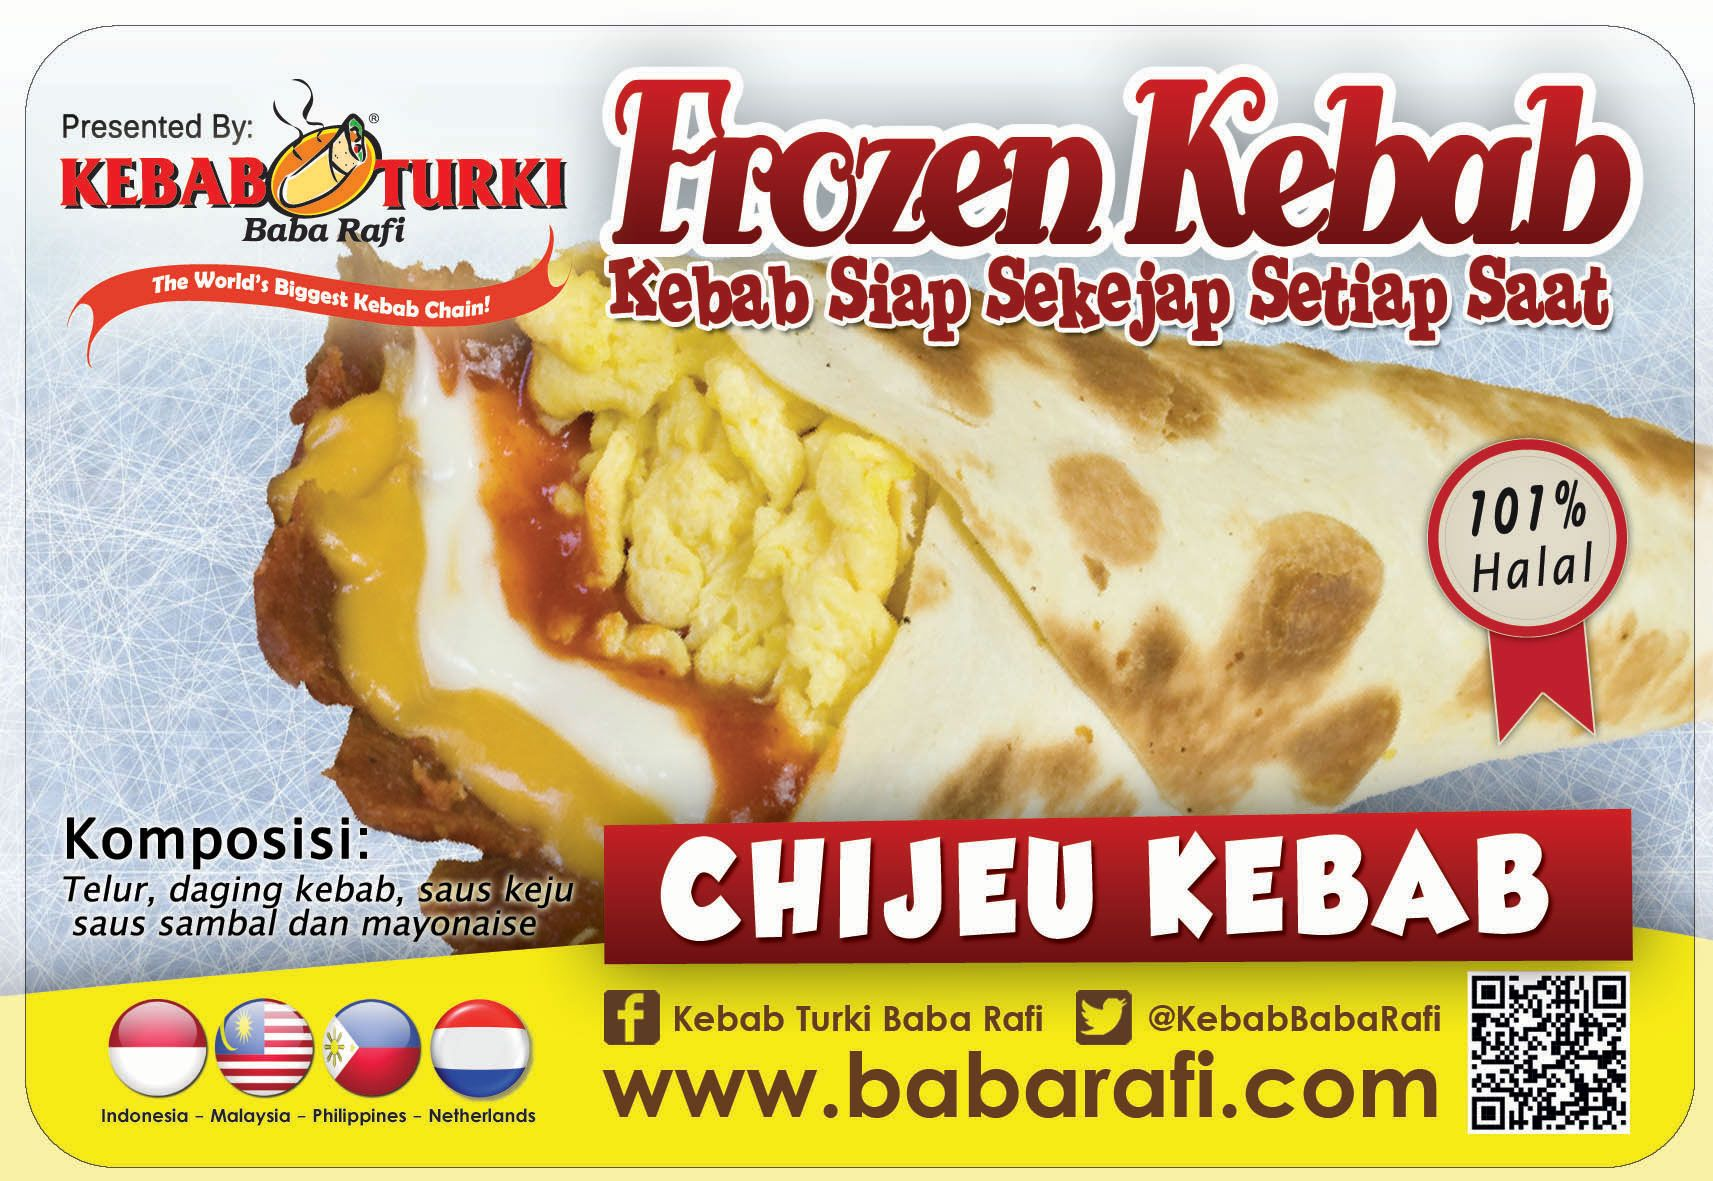 This Is Chijeu Kebab As One Of Our Frozen Kebab Delicious Snack Anytime You Want Www Babarafi Com Kebab Frozen Saus Sambal